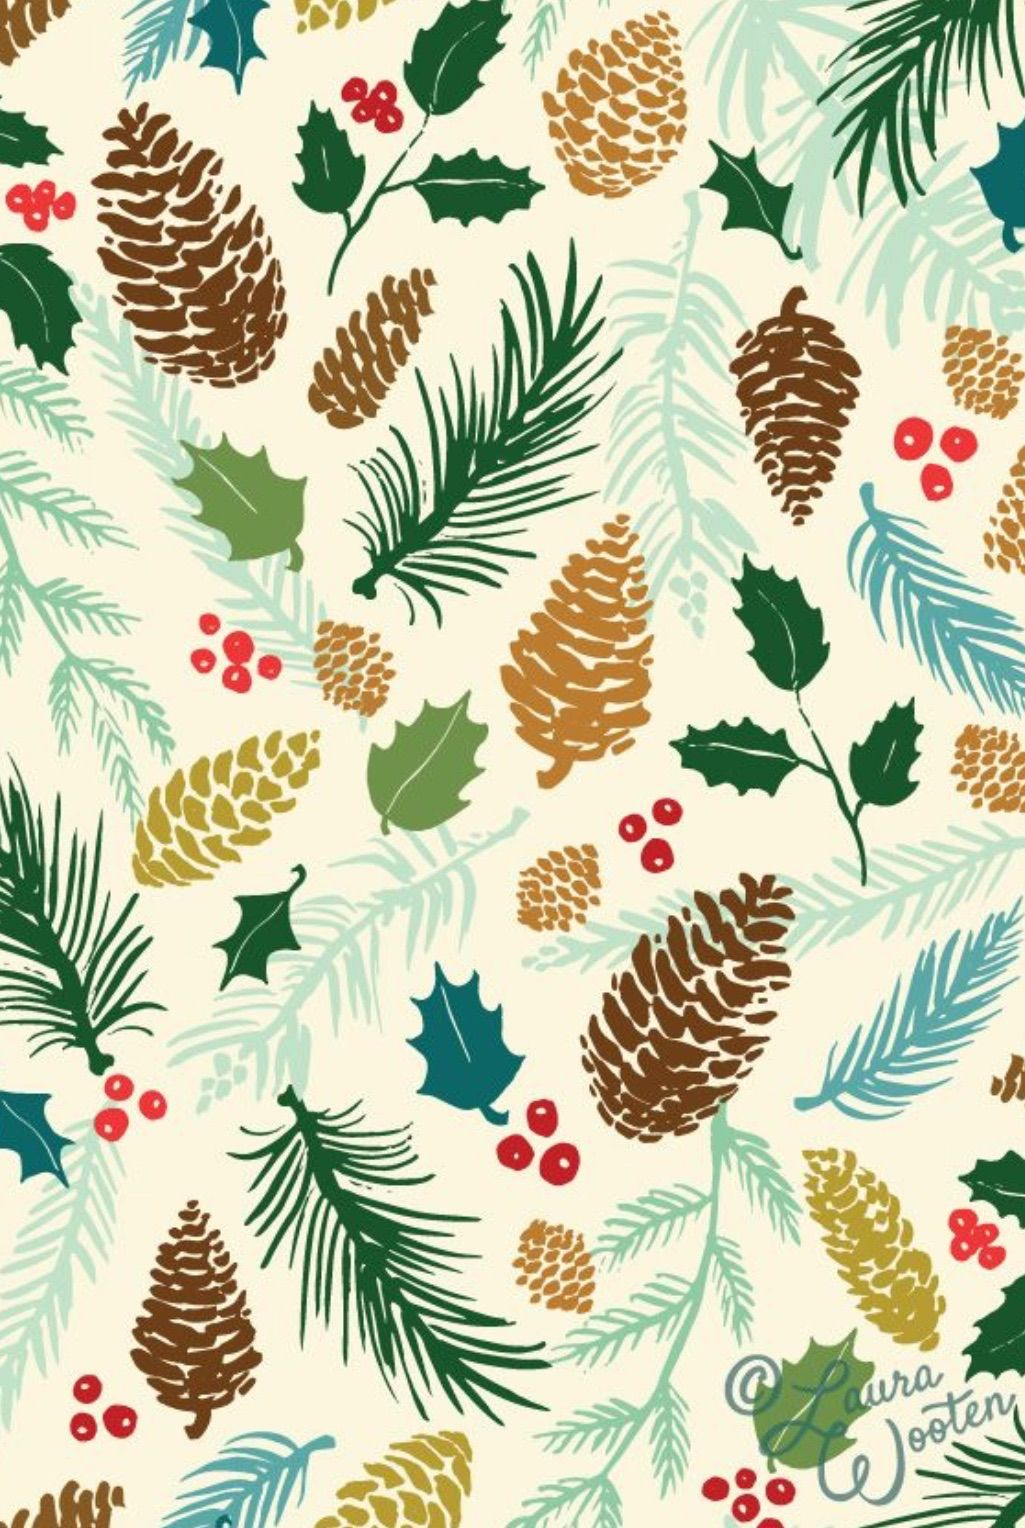 Free Christmas Wallpaper Love How It Has Pine Cones Berries And Evergreen Branches C Christmas Phone Wallpaper Christmas Wallpaper Free Christmas Wallpaper